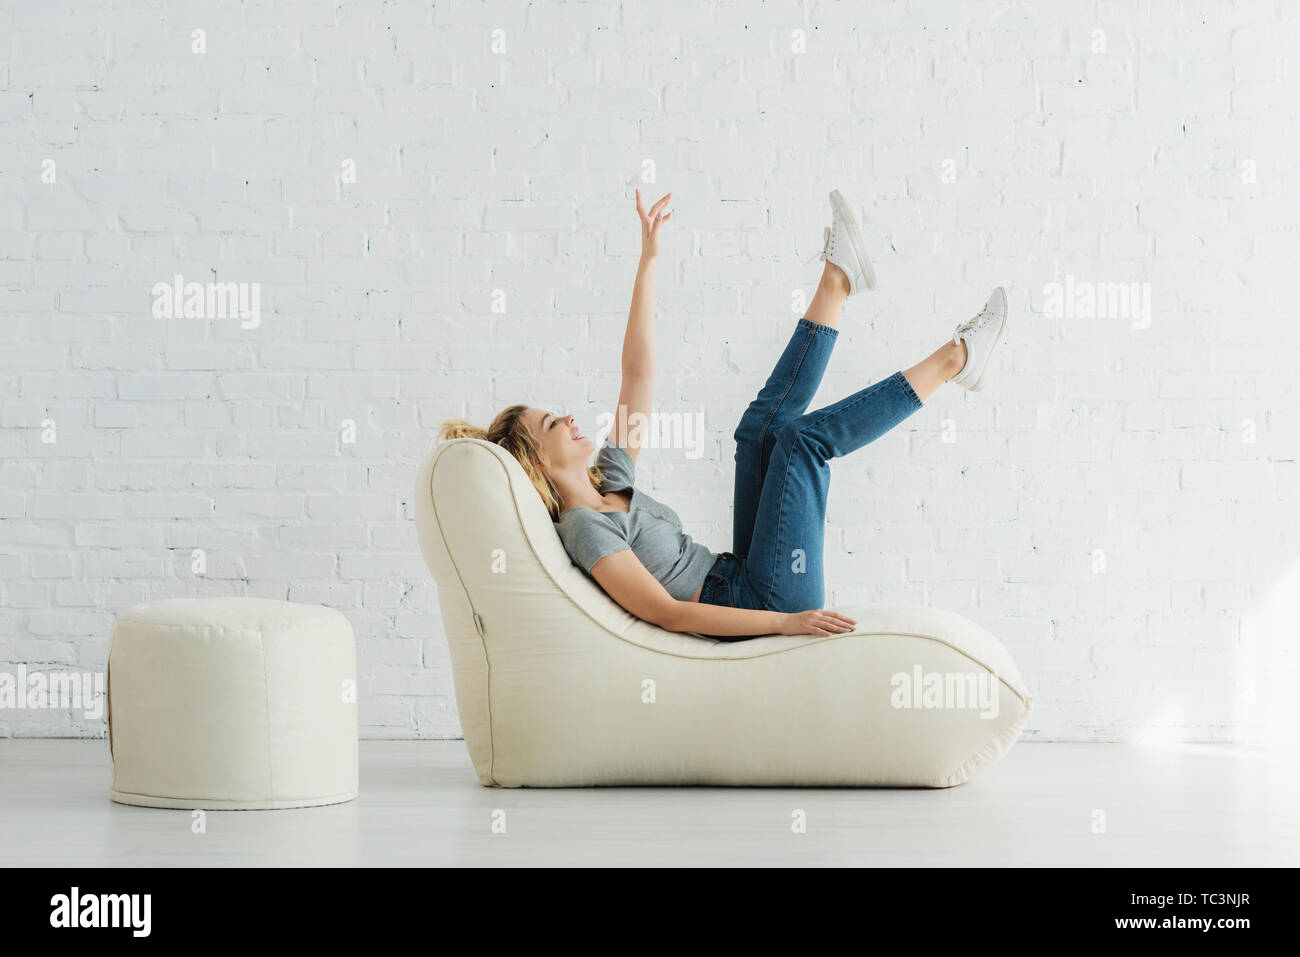 cheerful blonde girl lying on  bean bag chair and gesturing near brick wall - Stock Image